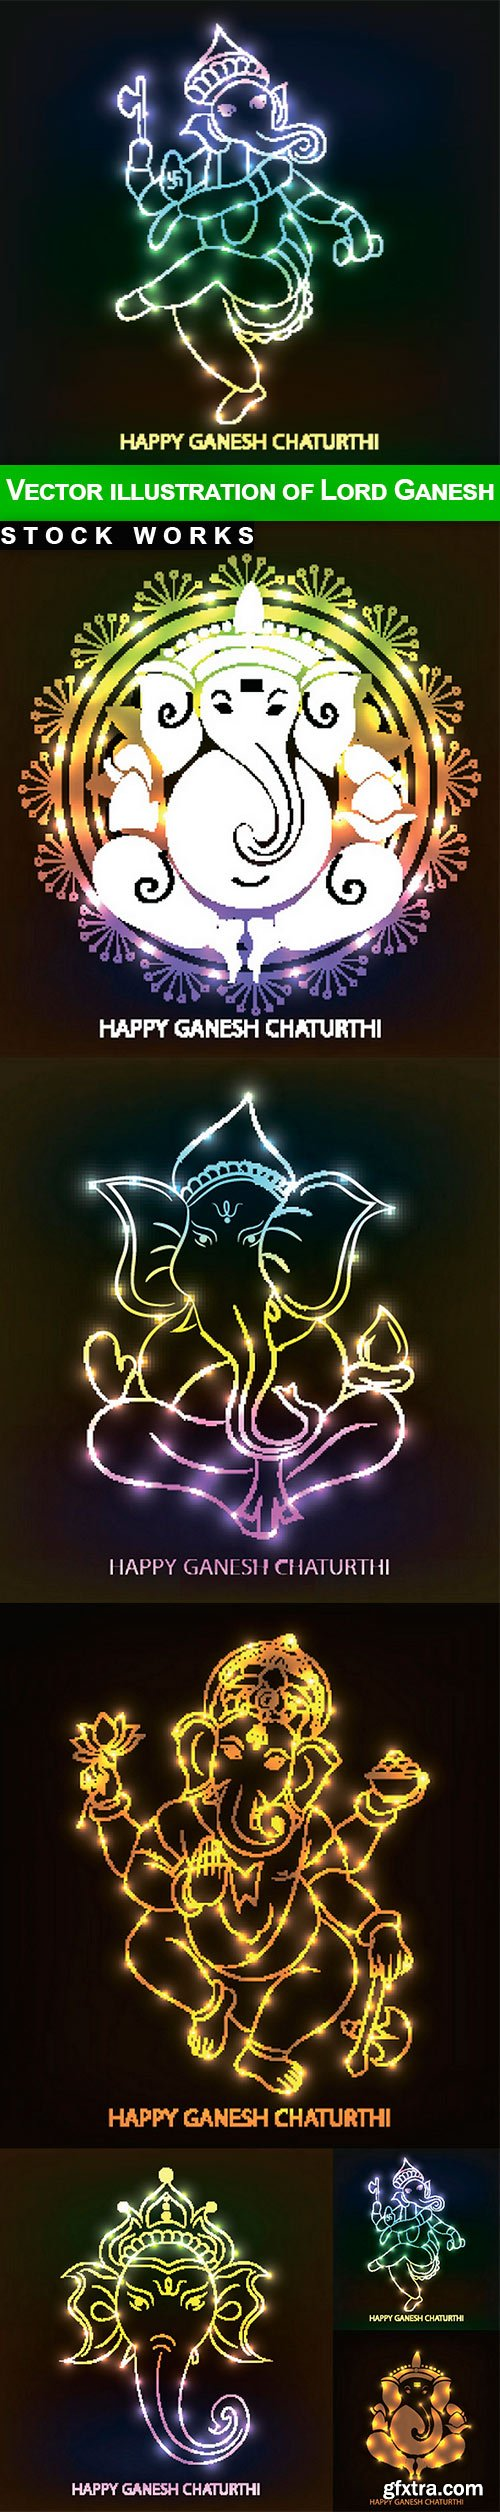 Vector illustration of Lord Ganesh - 6 EPS